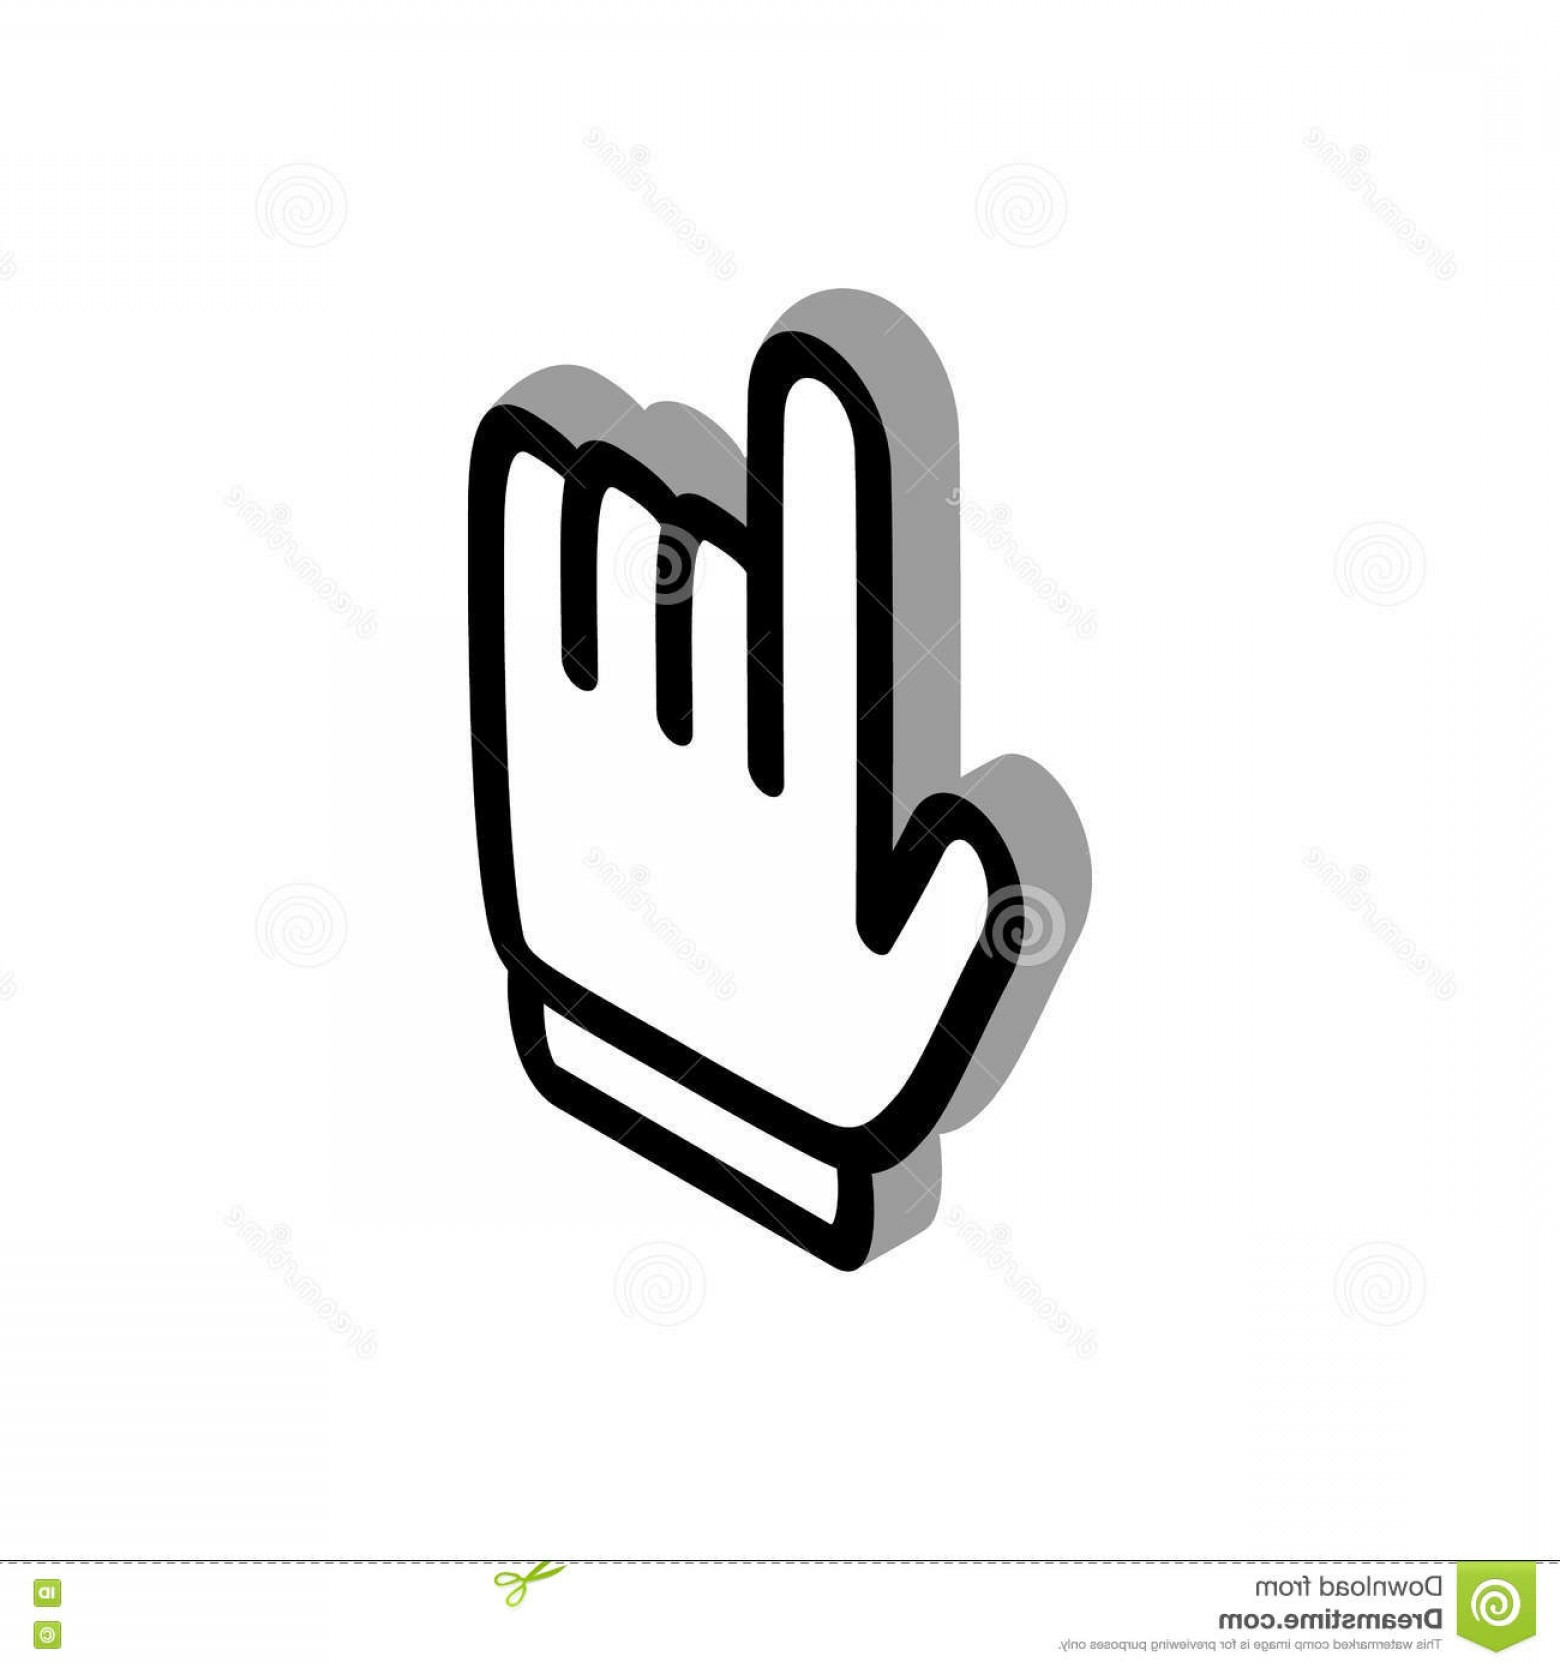 Computer Pointer Vector: Stock Illustration Pointer Computer Mouse Icon Isometric D Style White Background Image